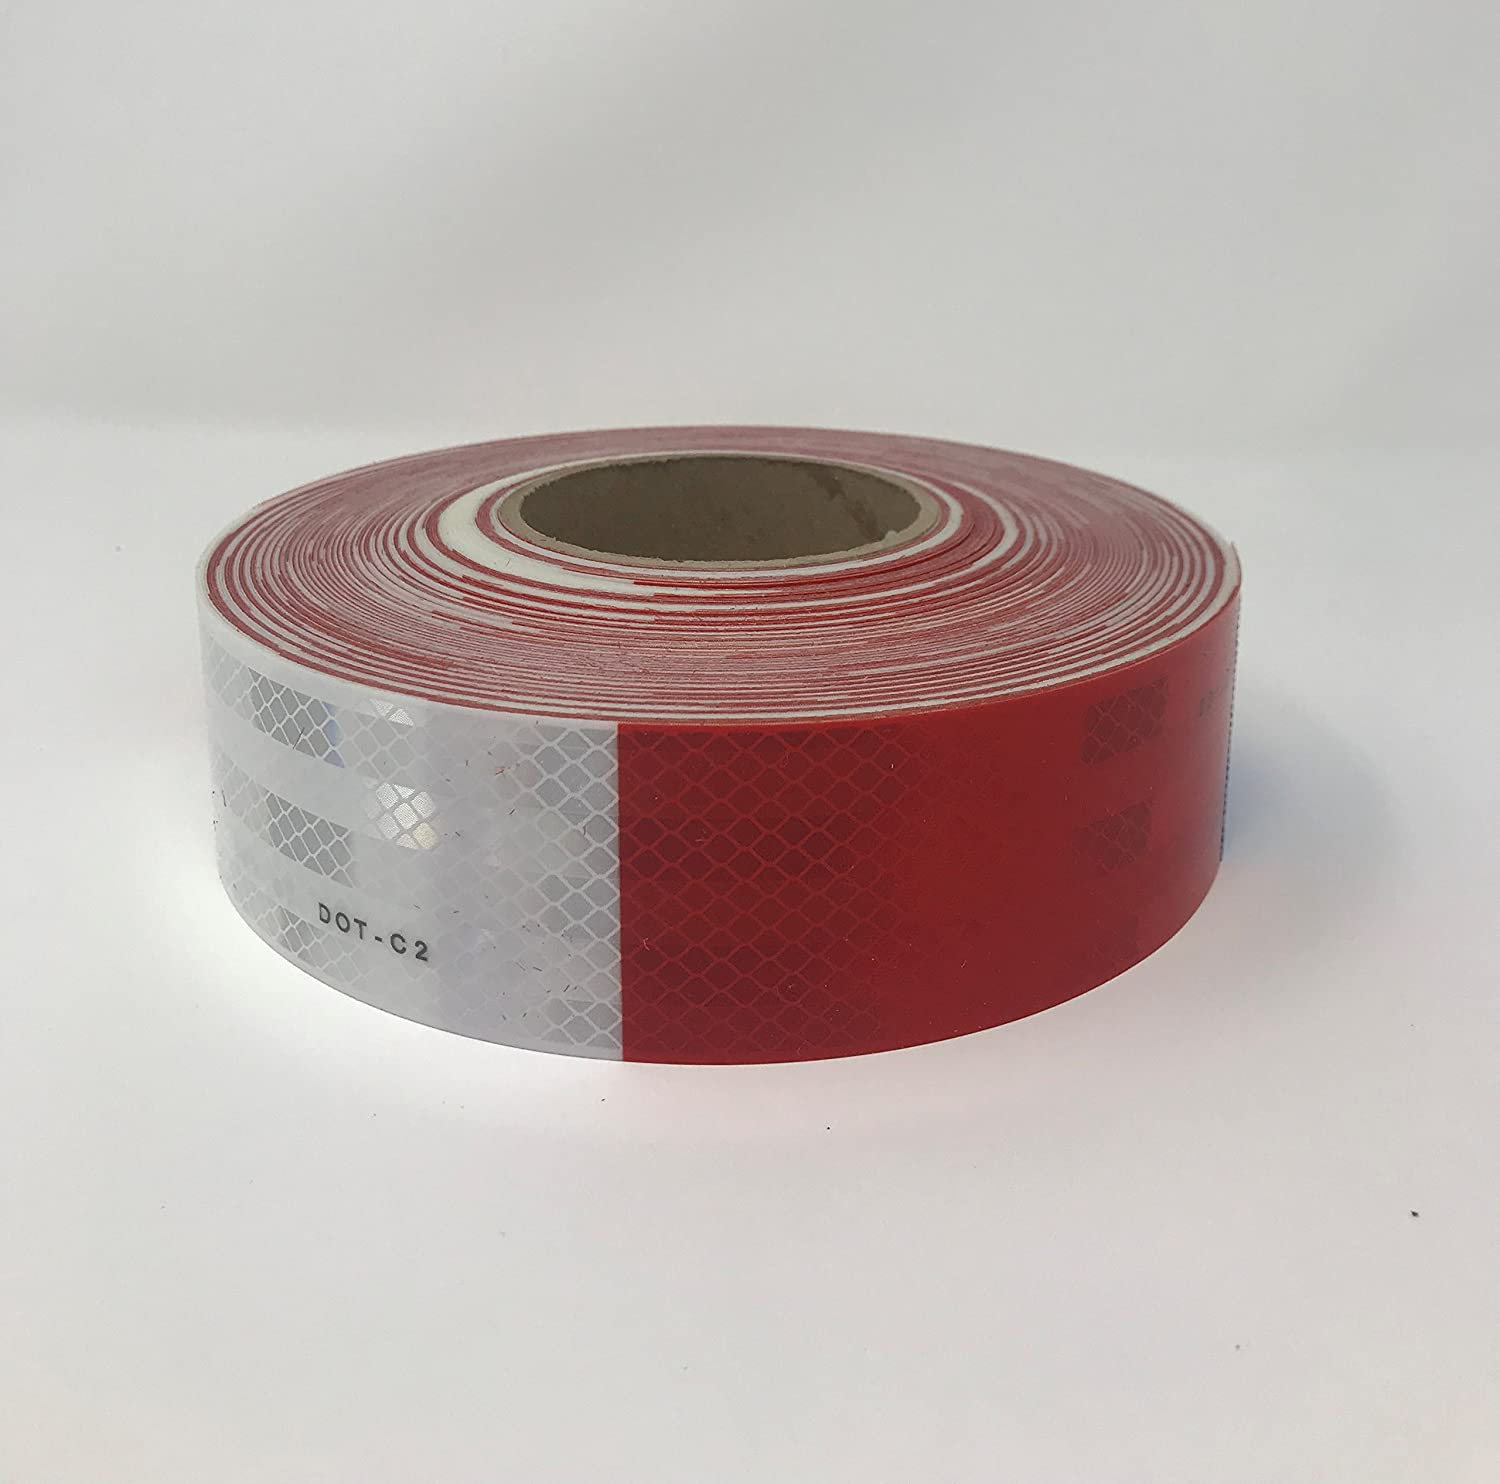 """Safe Way Traction 2"""" x 150' Roll 3M 983 Series Diamond Grade Conspicuity Trailer DOT-C2 Reflective Safety Tape Red & White 6""""/ 6"""" Pattern"""